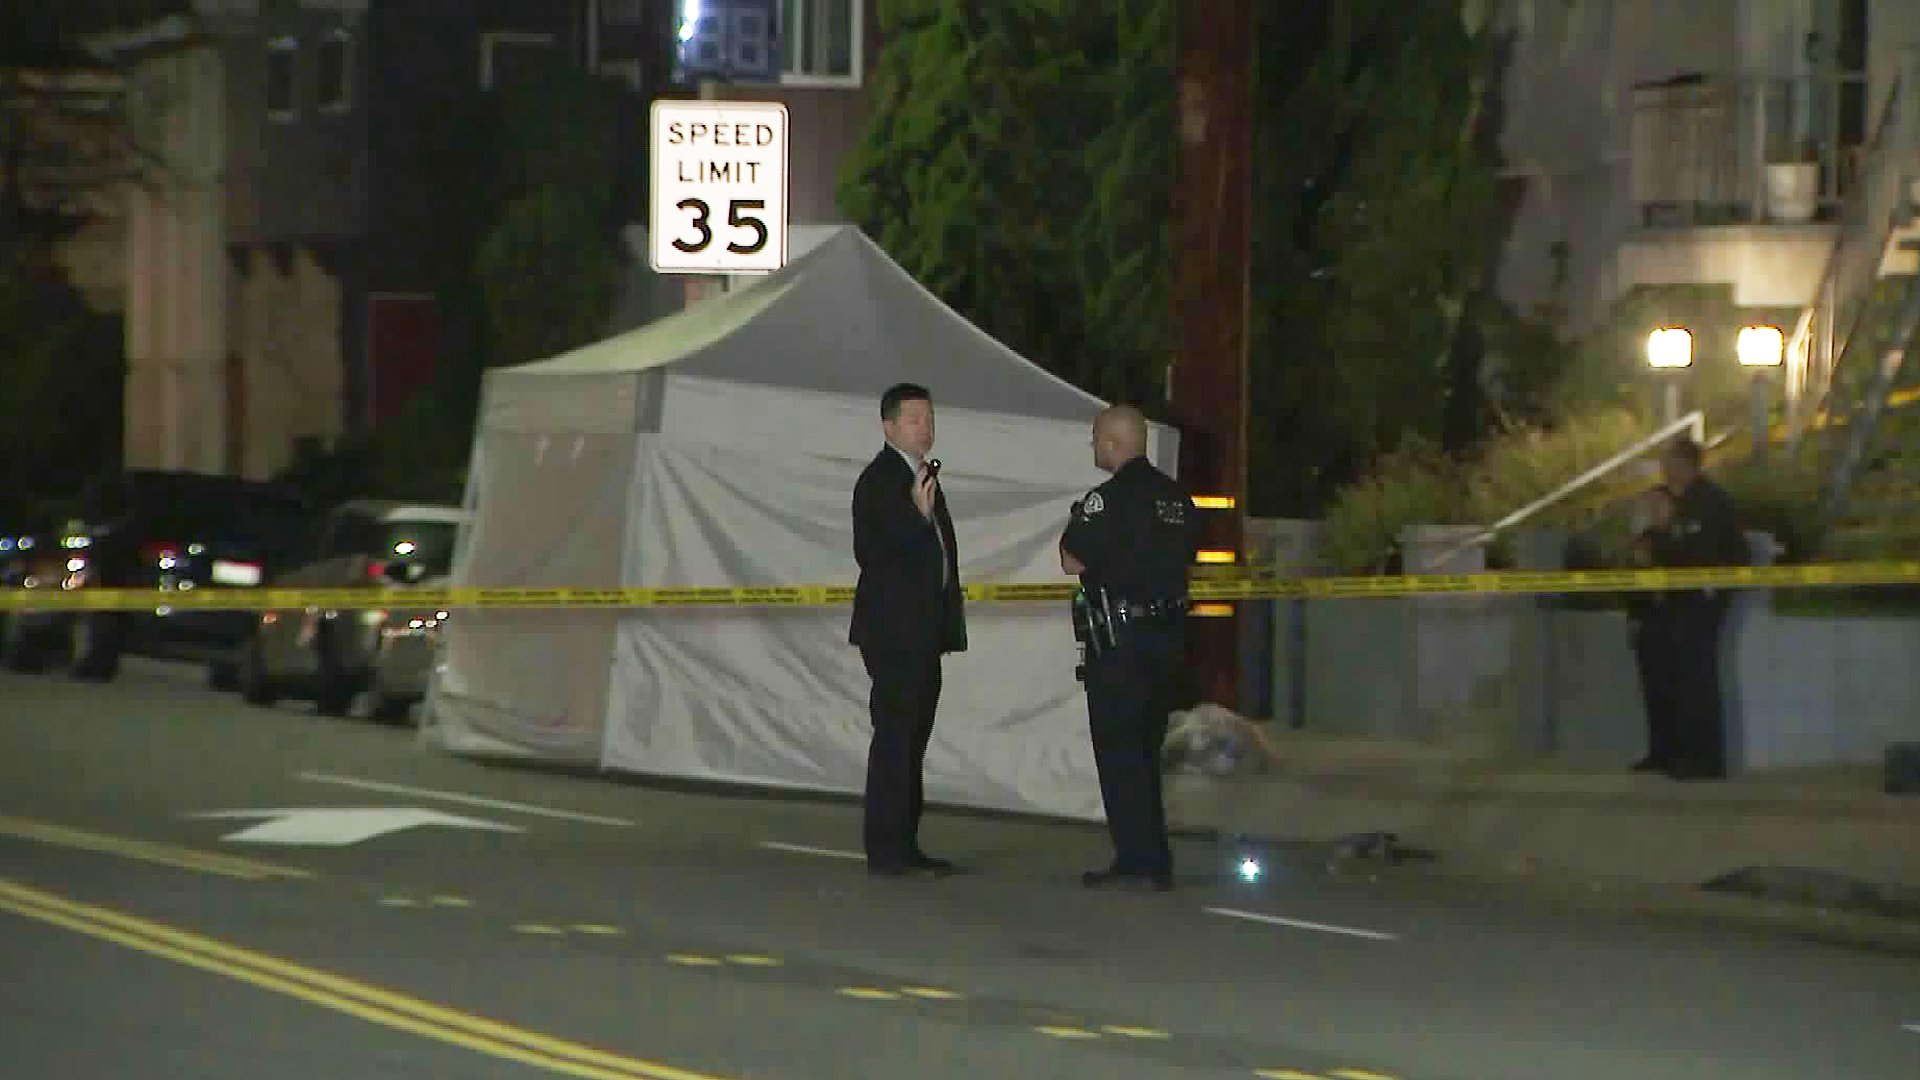 Police investigate a fatal hit-and-run crash in Playa Del Rey on Feb. 13, 2020. (Credit: KTLA)